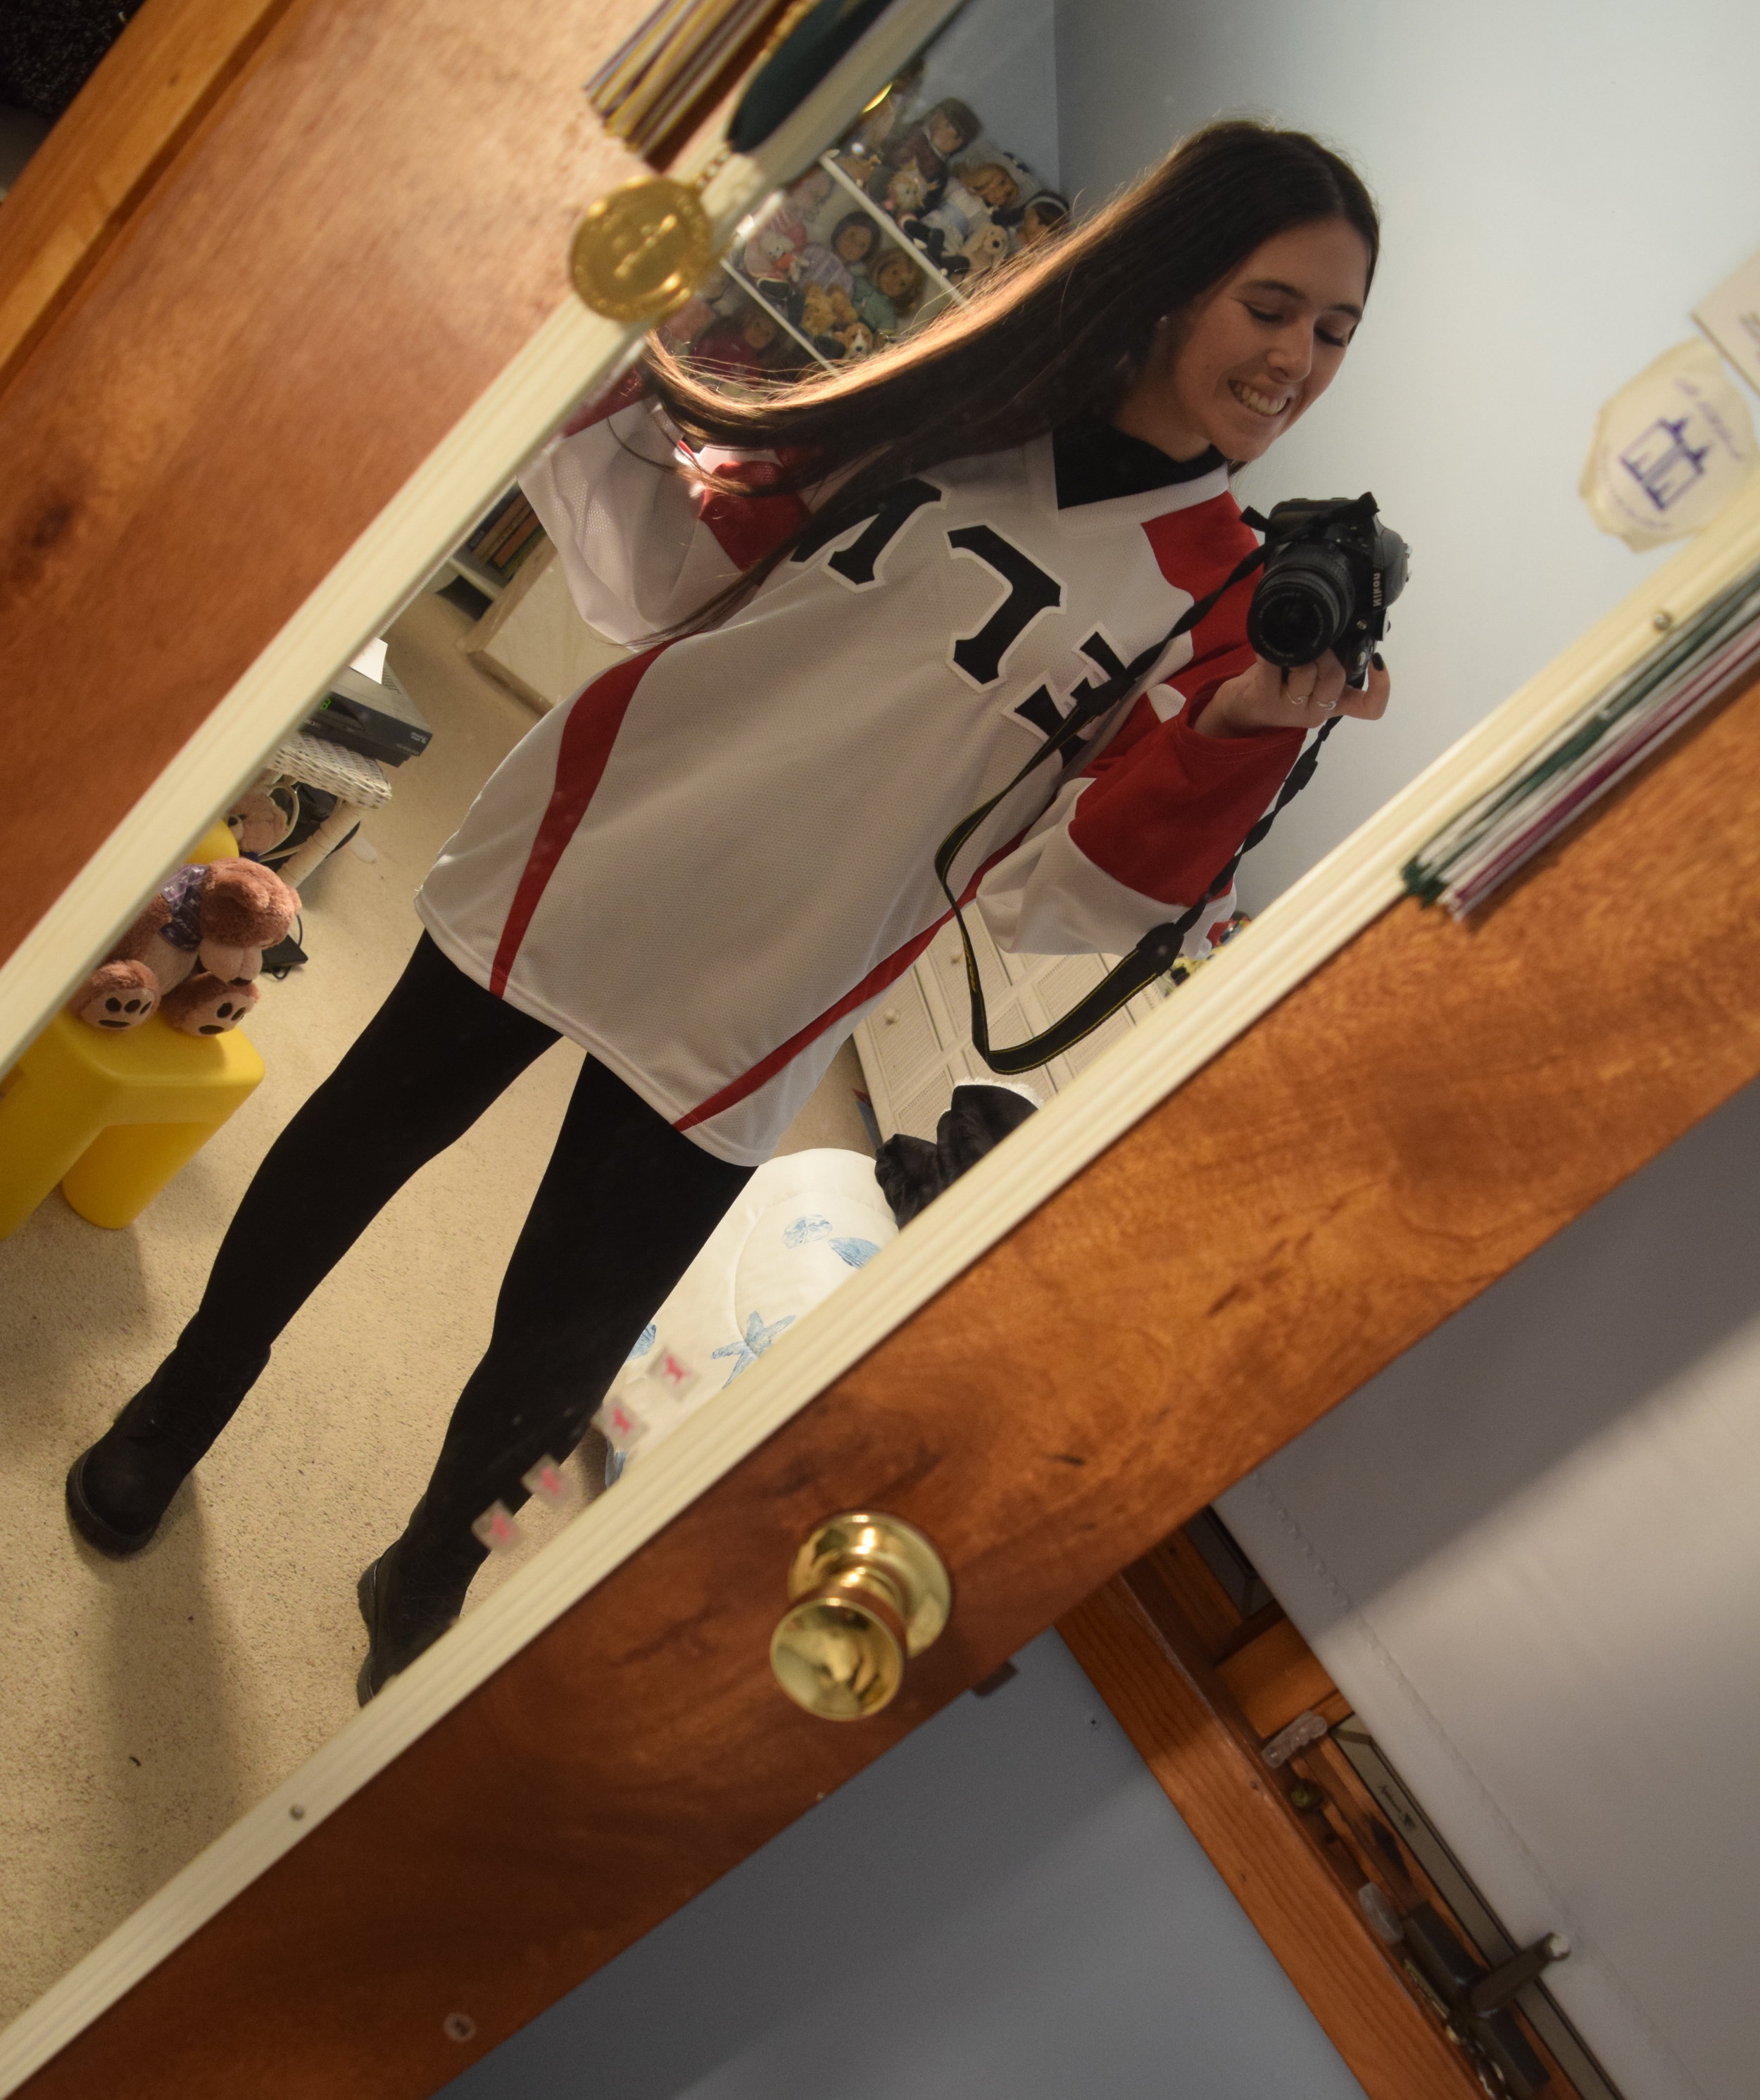 sororityhockeyjerseyleggingstimberlands.jpg